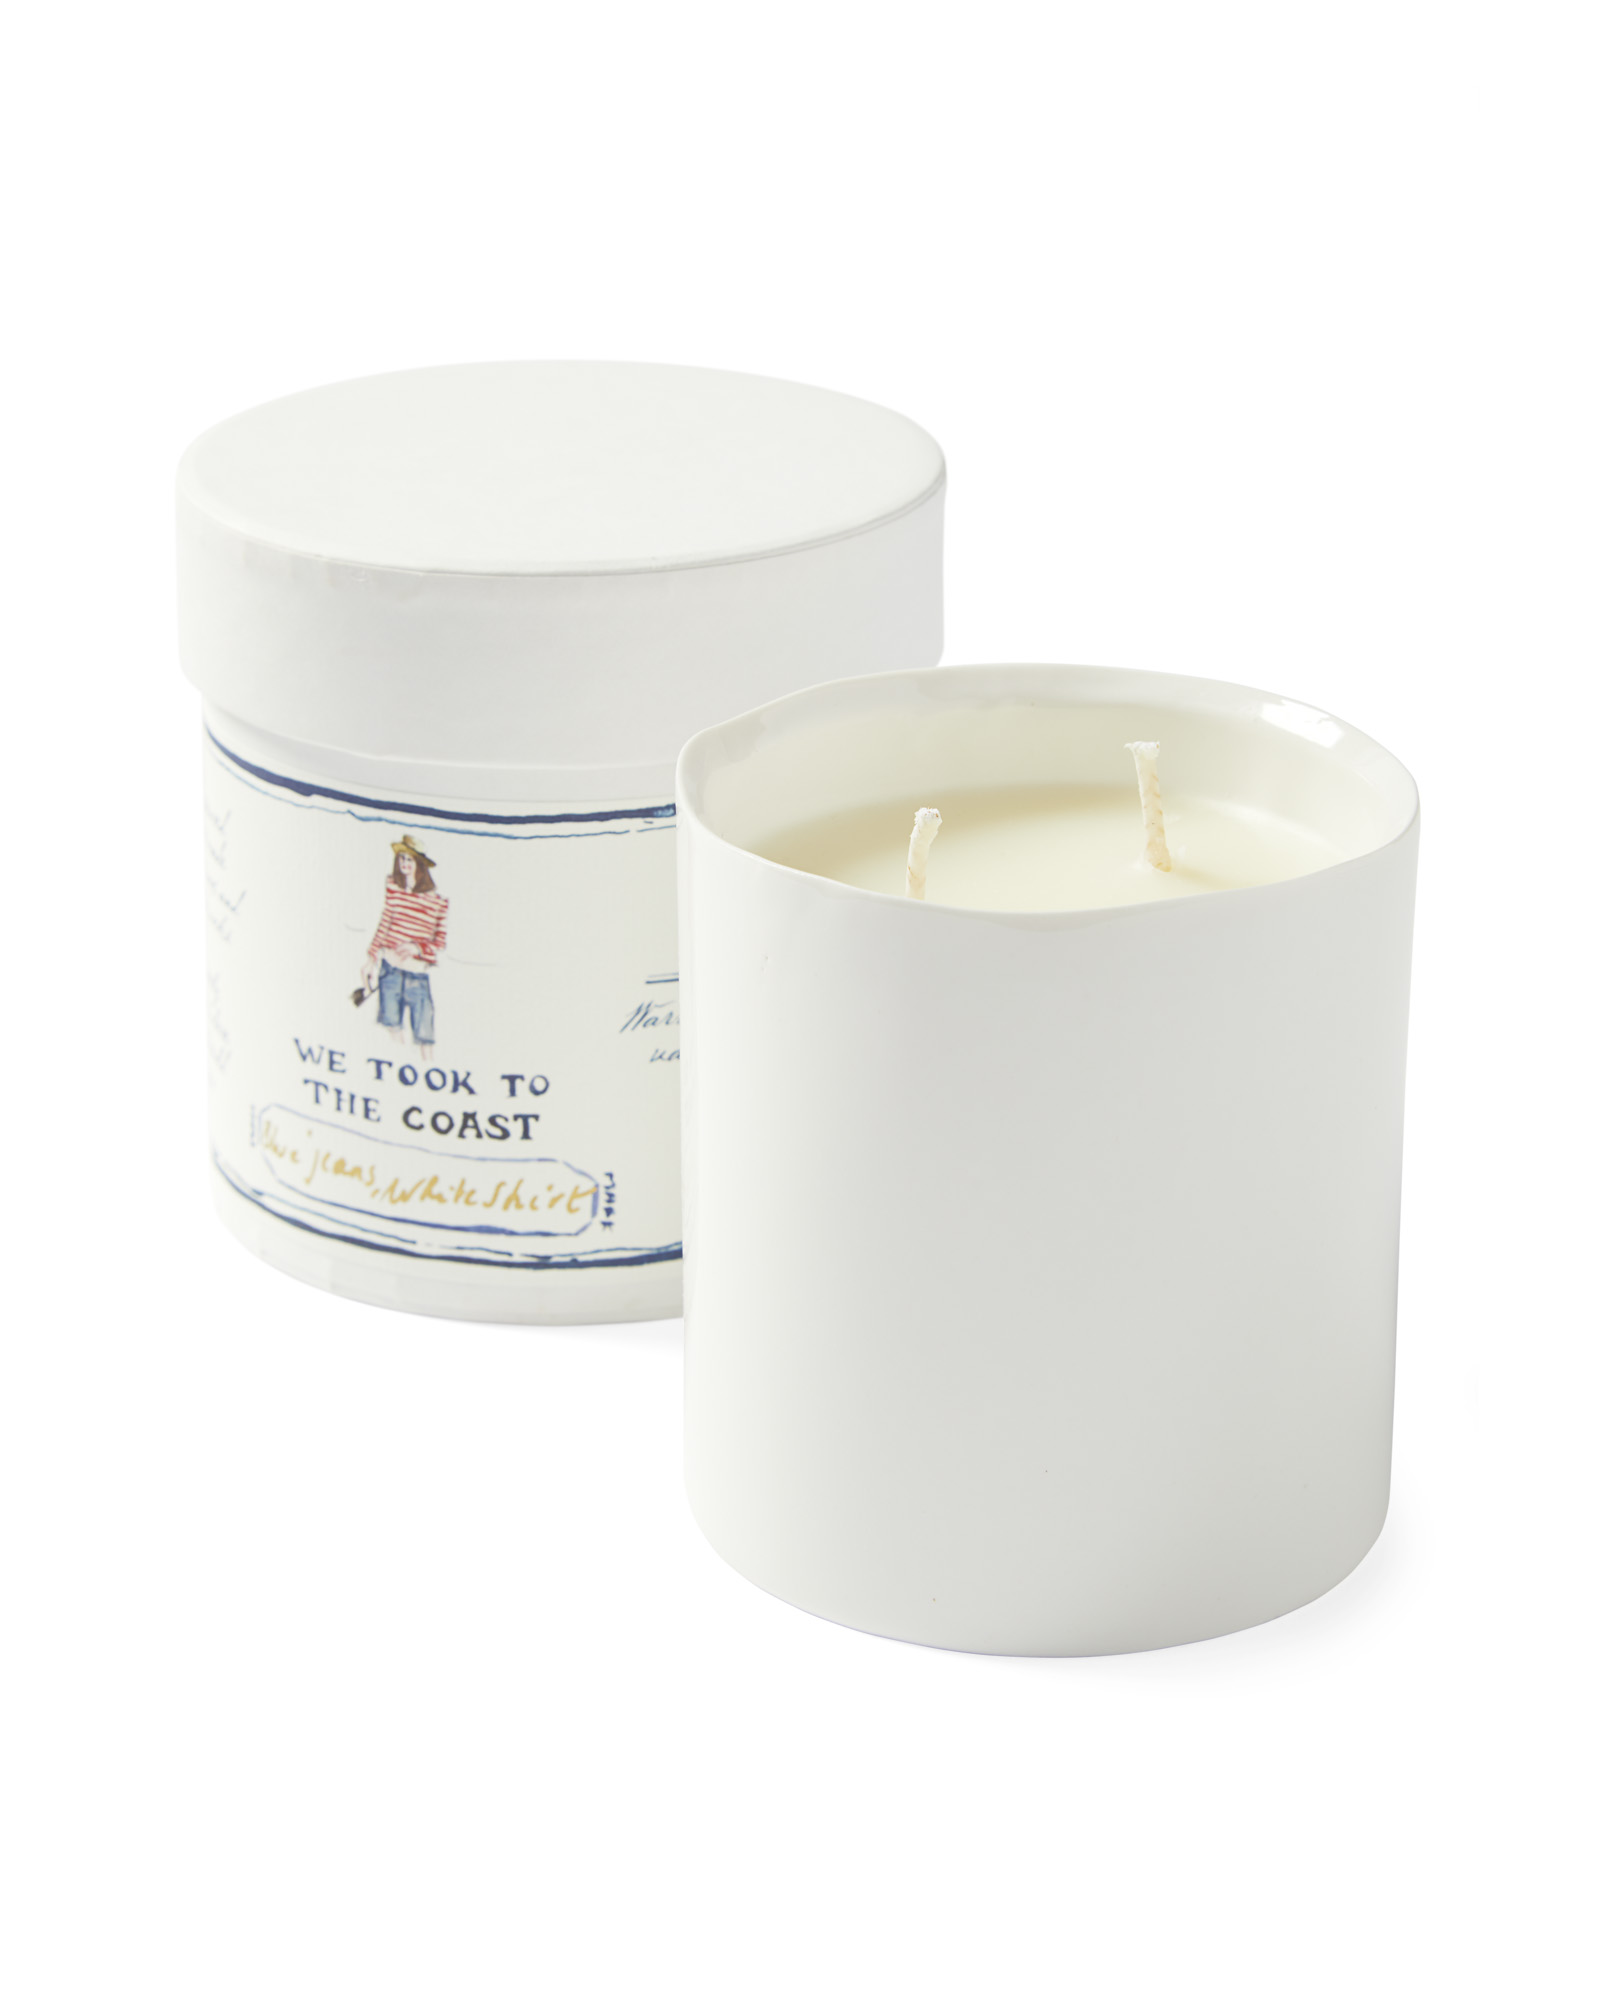 Blue Jeans, White Shirt Candle,